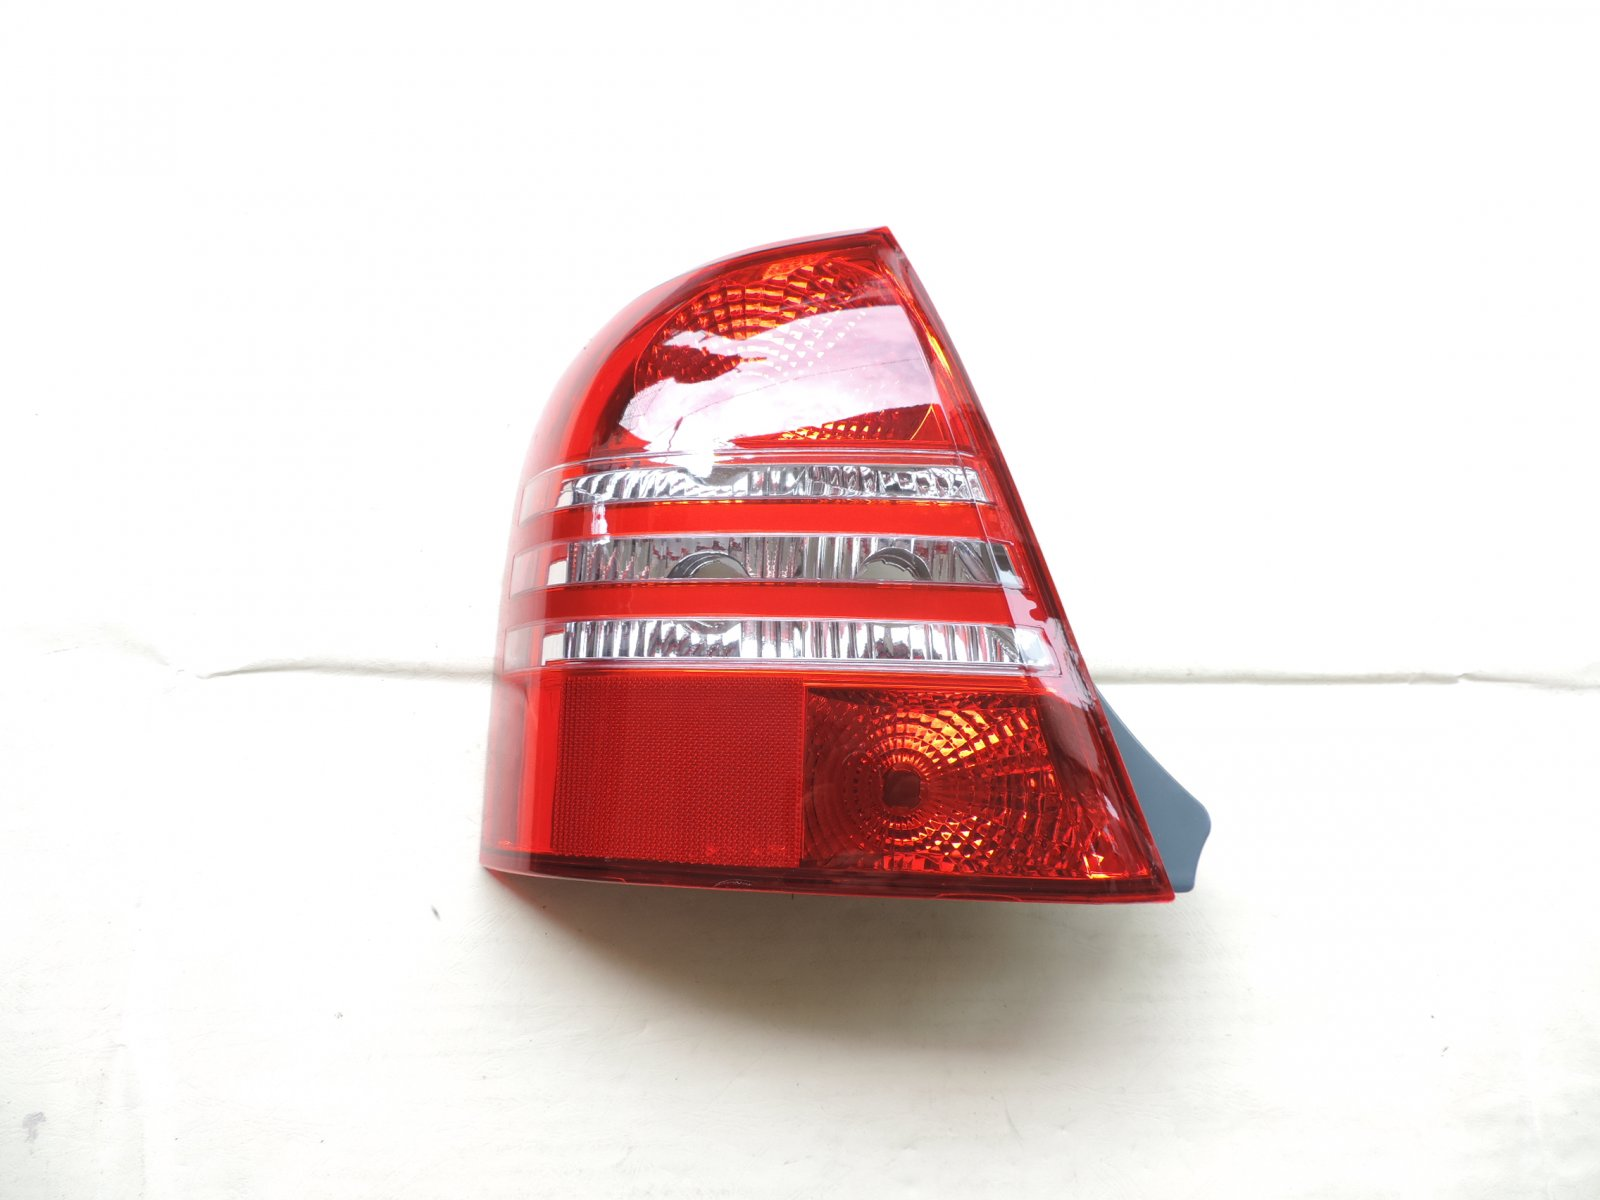 NEW Protege BJ MK8 99-04 Sedan 4D Clear Tail Rear Light Red//Clear V3 for MAZDA